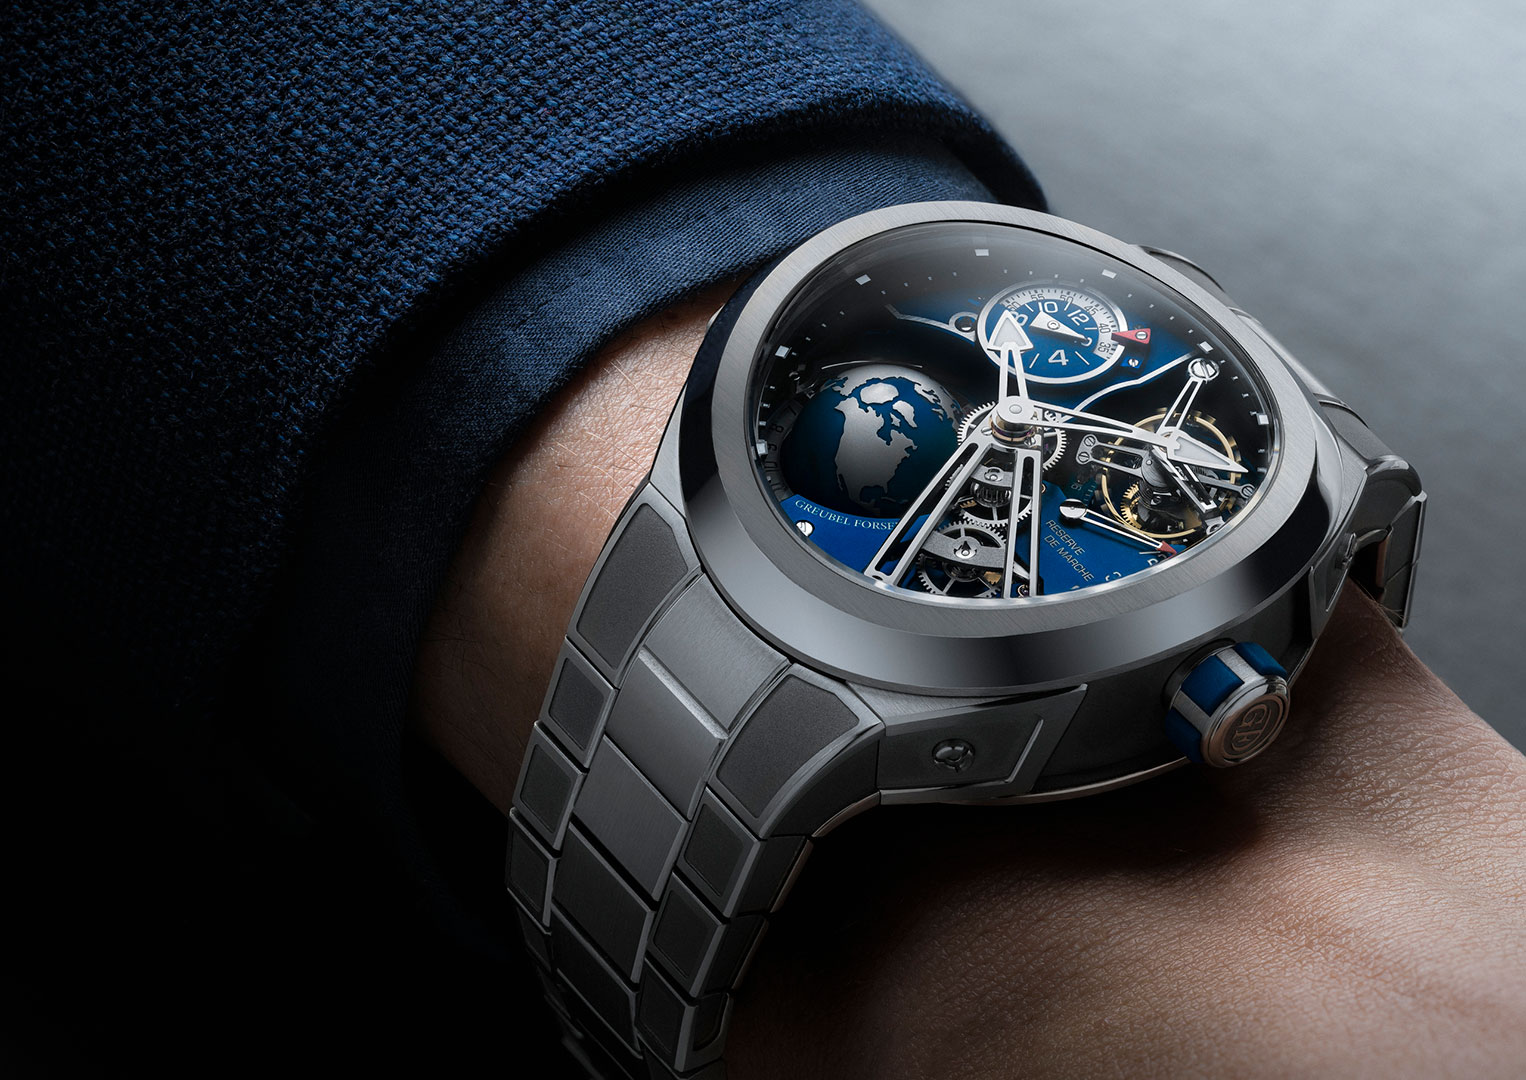 Greubel Forsey remains an independent watchmaker